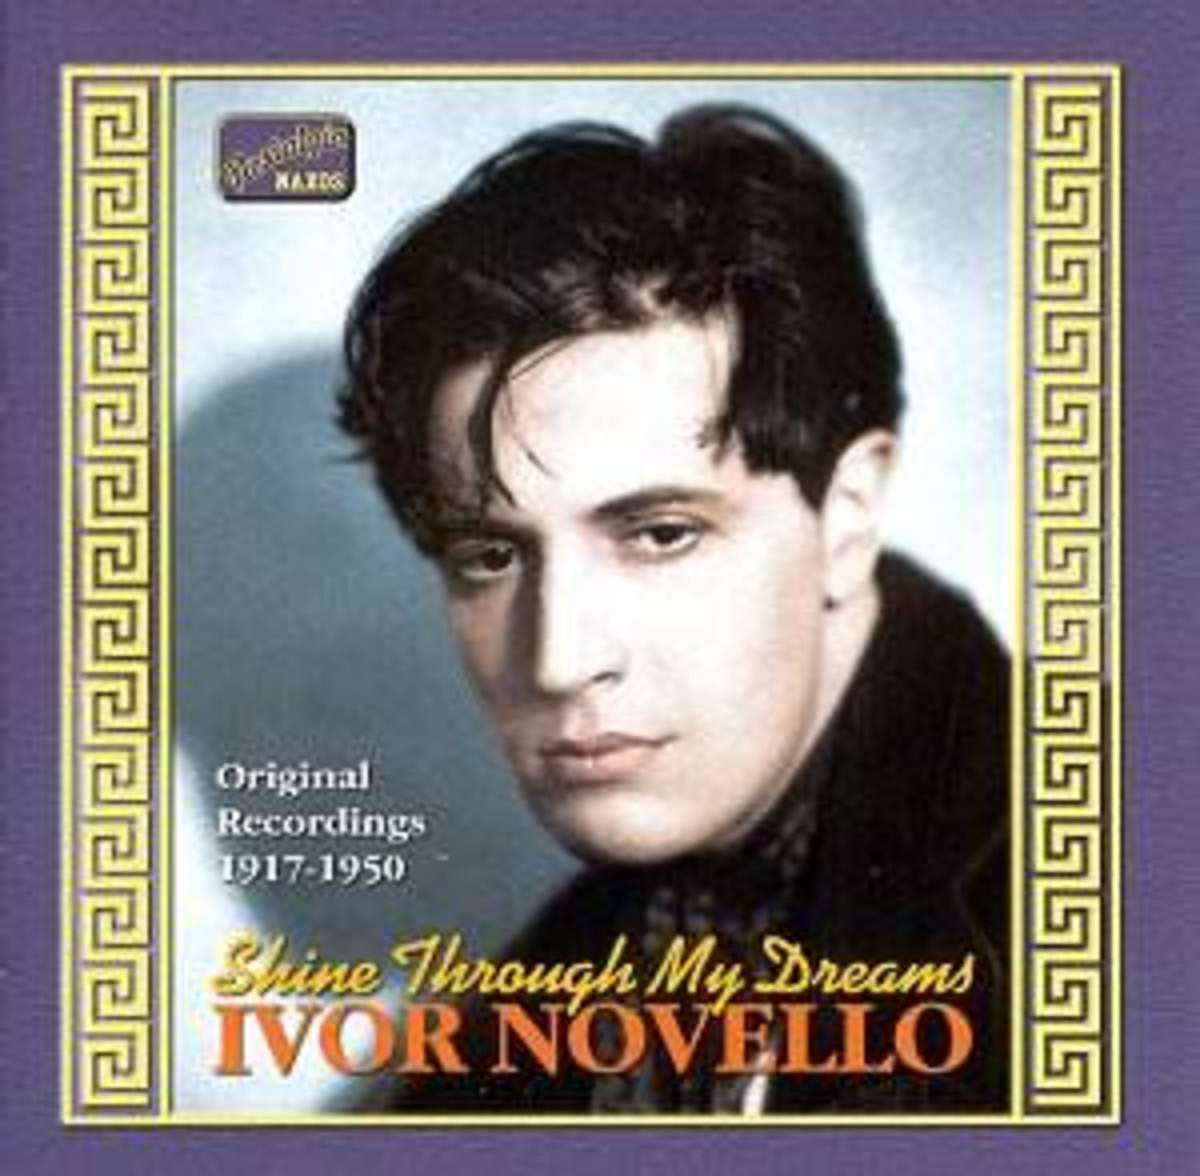 Ivor Norvello     Best and Famous Welsh Actors and Actresses